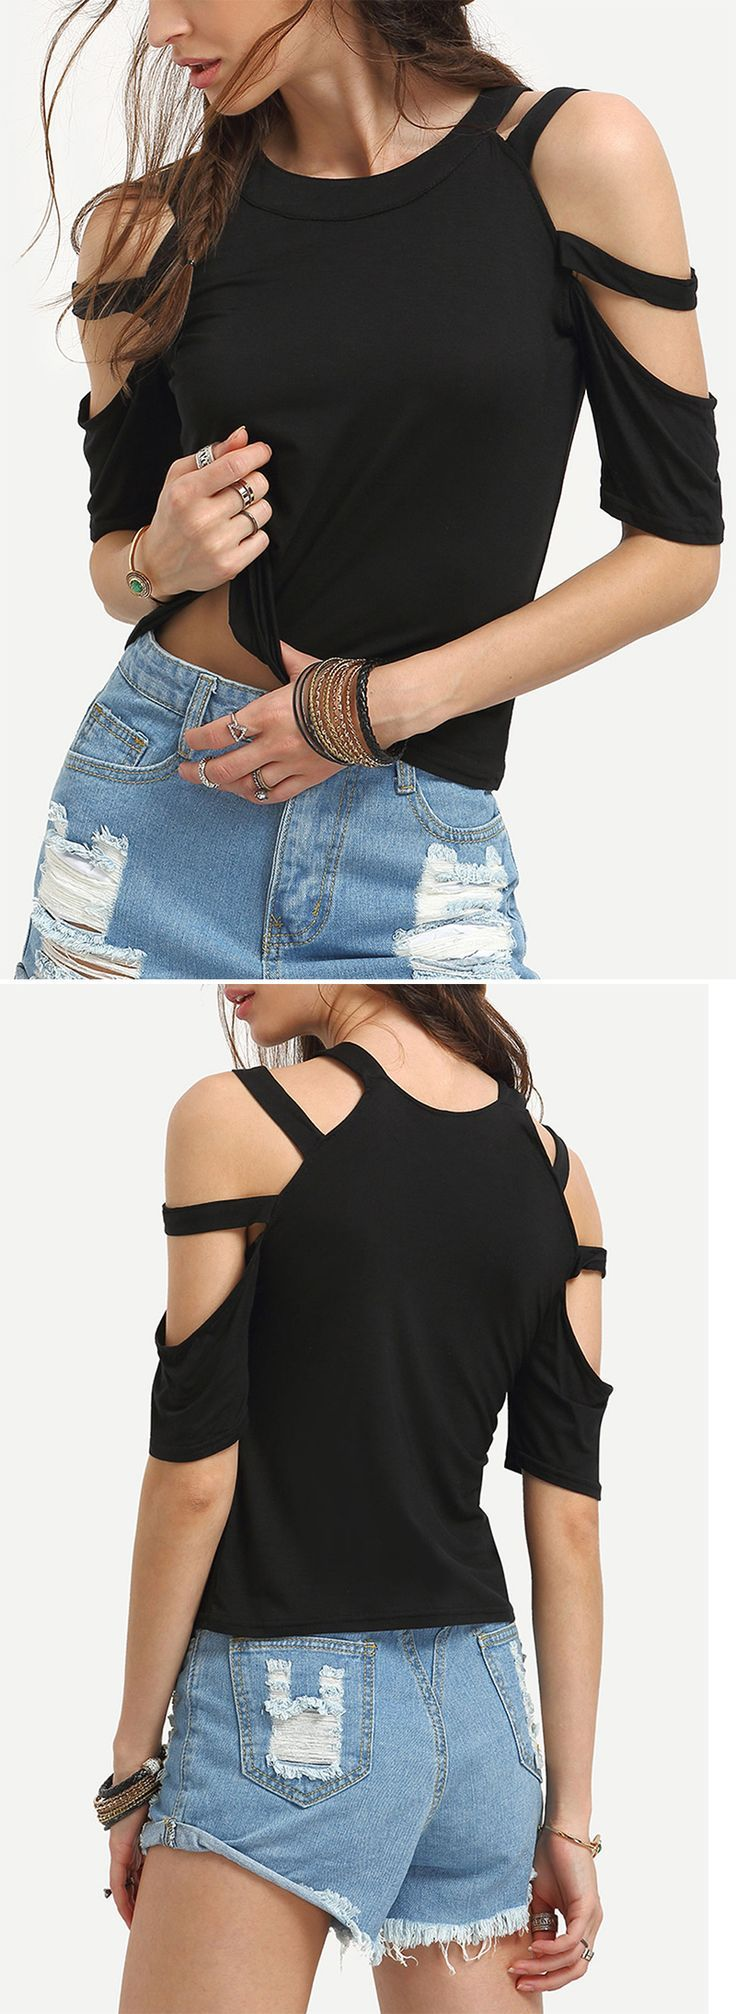 Summer street style -Ladder-Cutout Shoulder T-shirt. Special shoulder design and hot sexy tops for party. US$6.99.